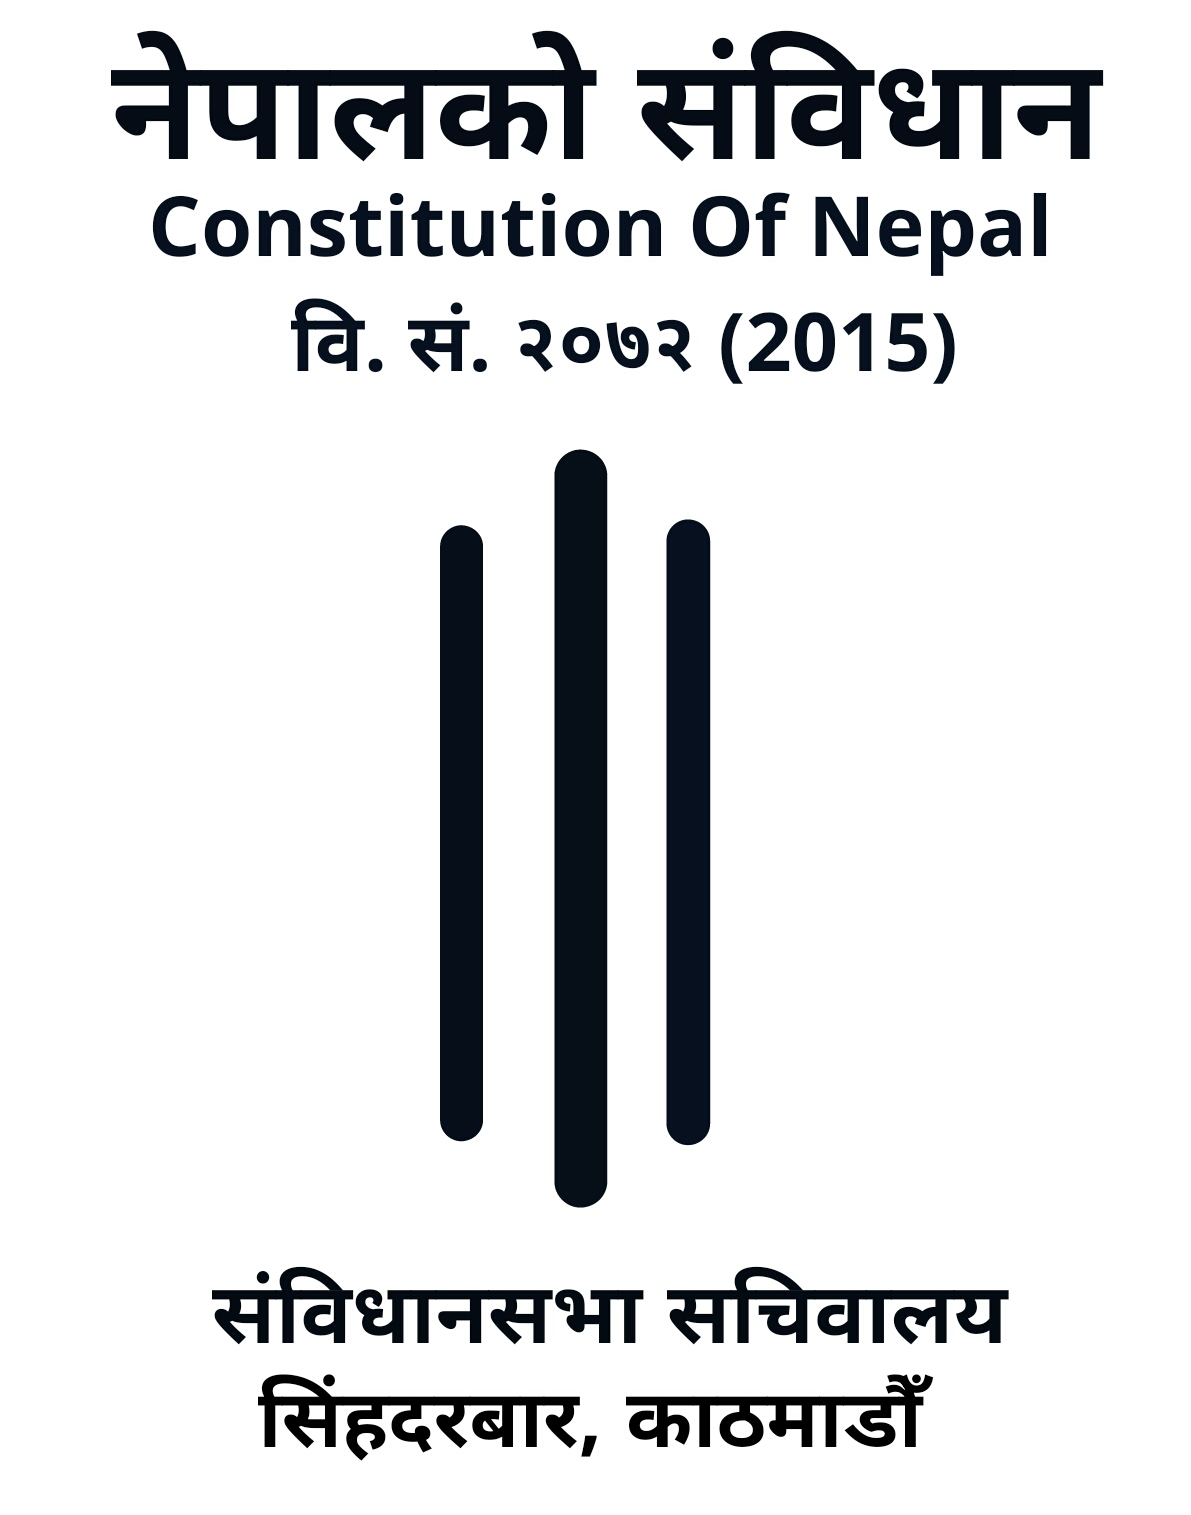 Constitution of Nepal - Wikipedia